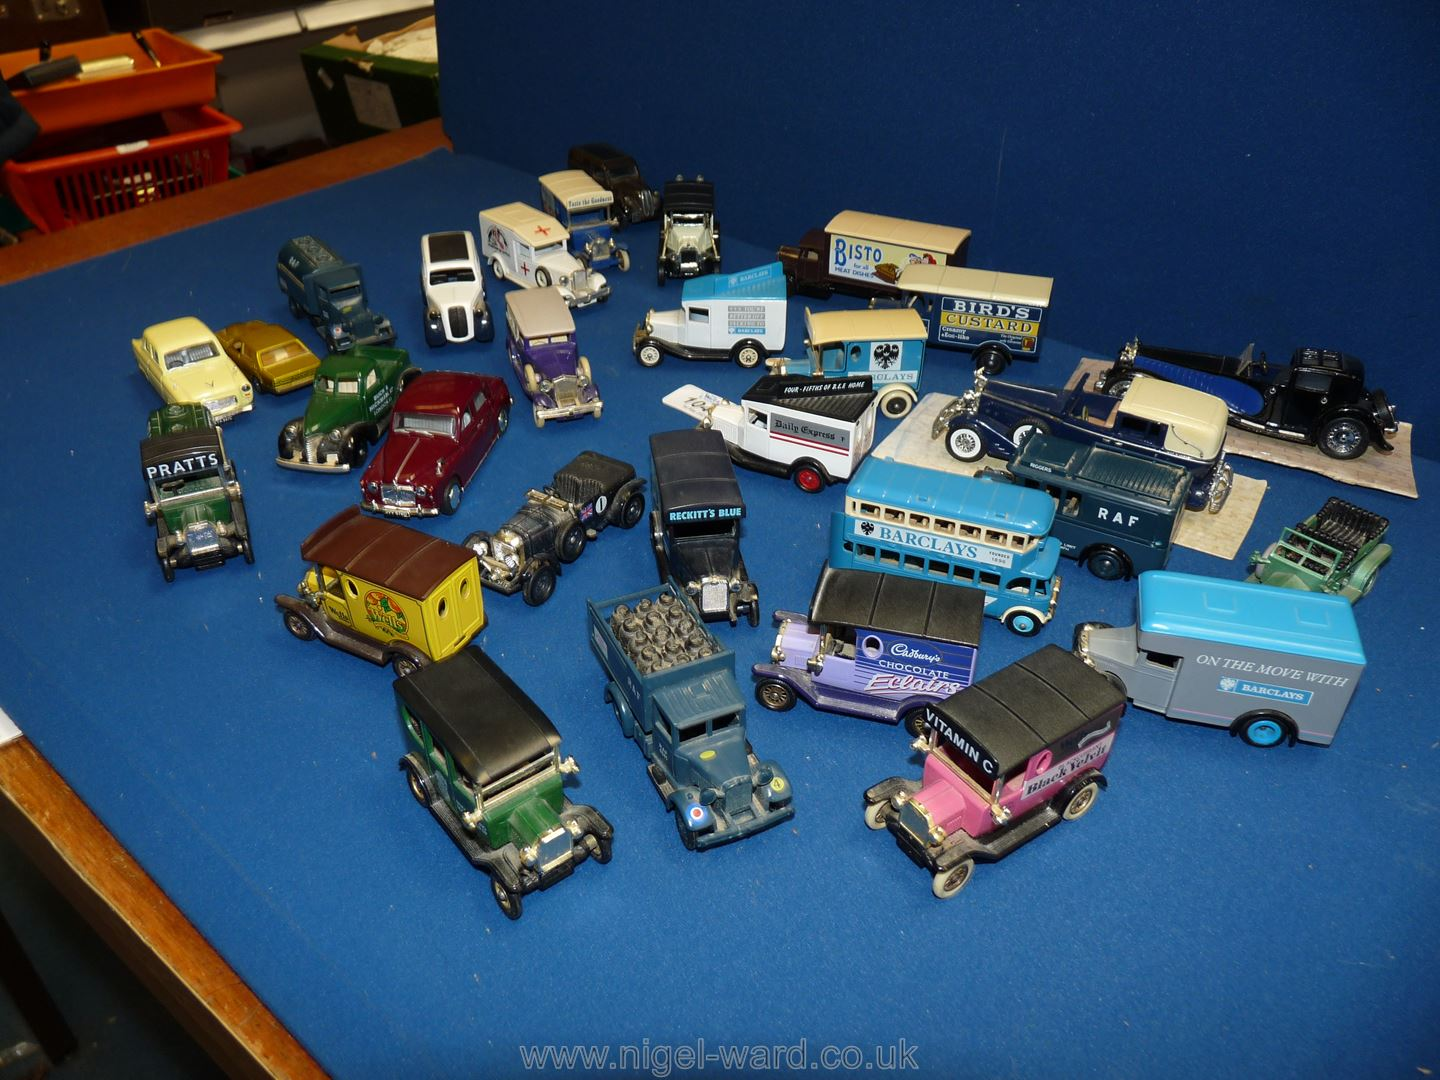 A collection of 30 model vehicles, mainly trucks and vans including Corgi, Matchbox, - Image 2 of 2